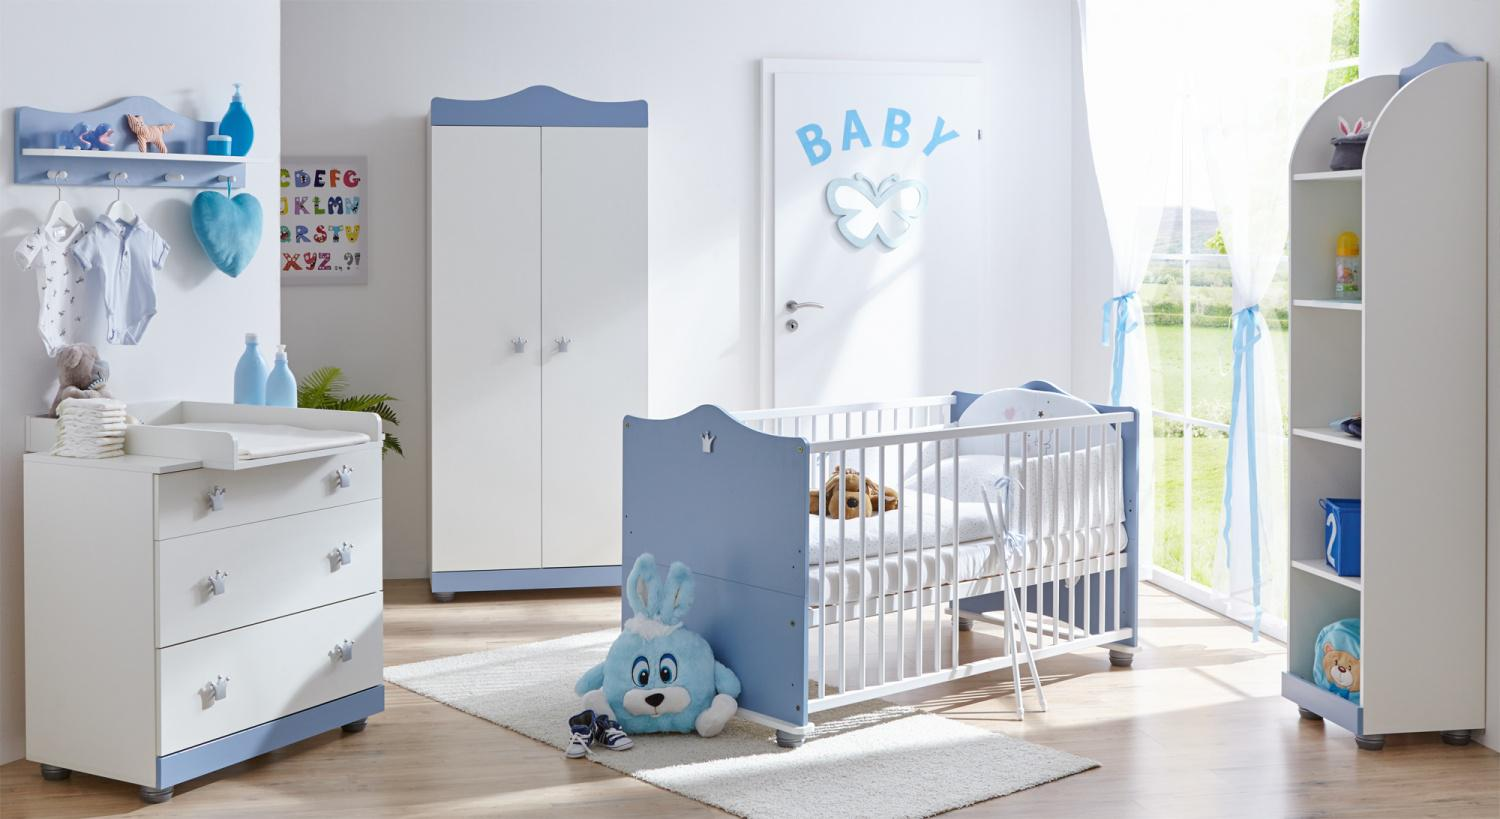 jungen babyzimmer milan 5 teilig blau wei kaufen bei. Black Bedroom Furniture Sets. Home Design Ideas